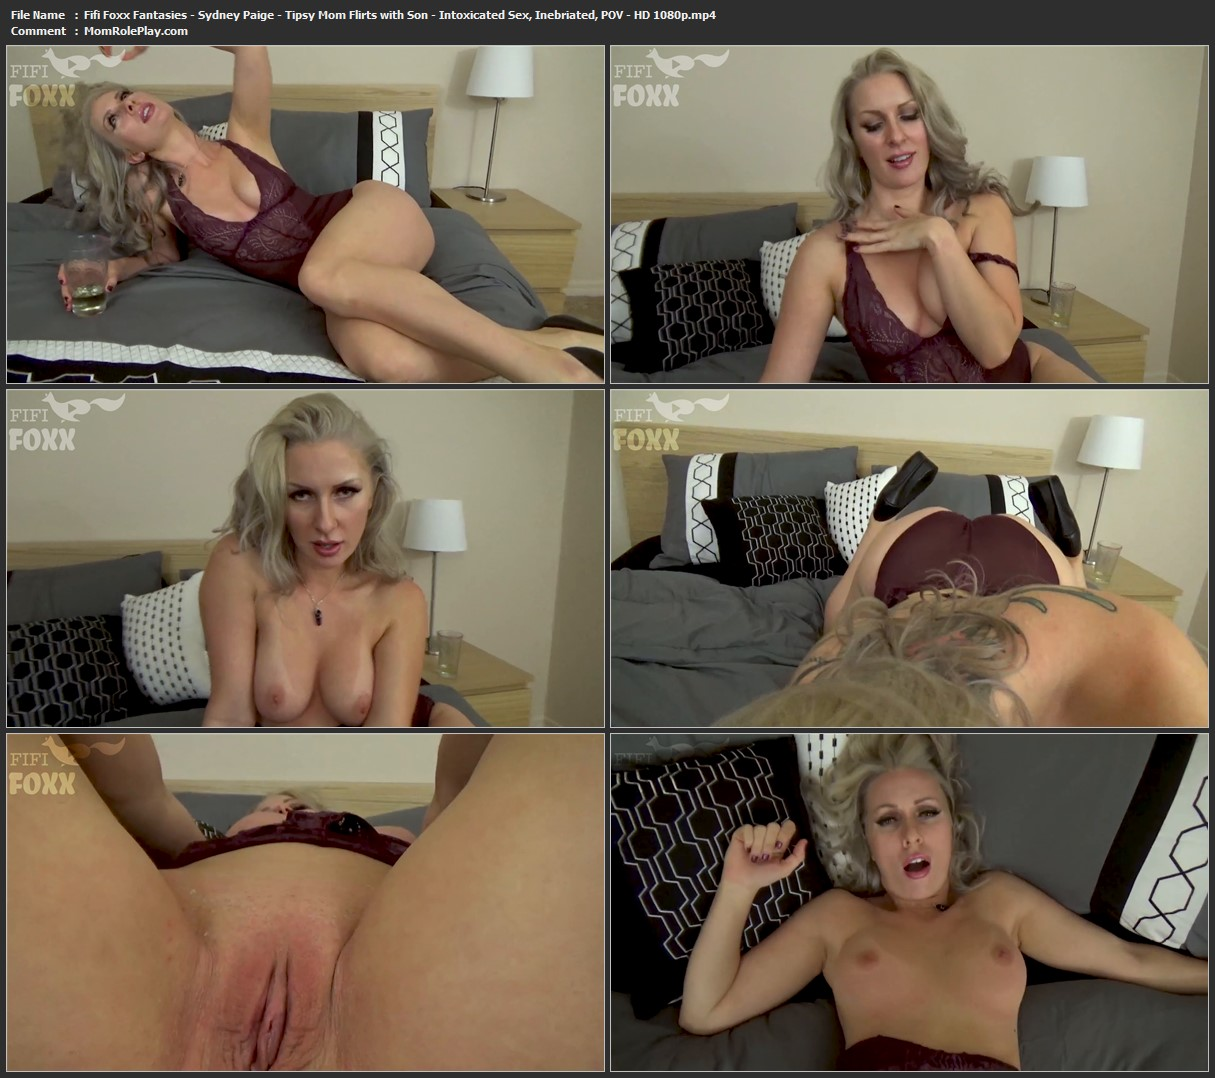 Fifi Foxx Fantasies - Sydney Paige - Tipsy Mom Flirts with Son - Intoxicated Sex, Inebriated, POV - HD 1080p